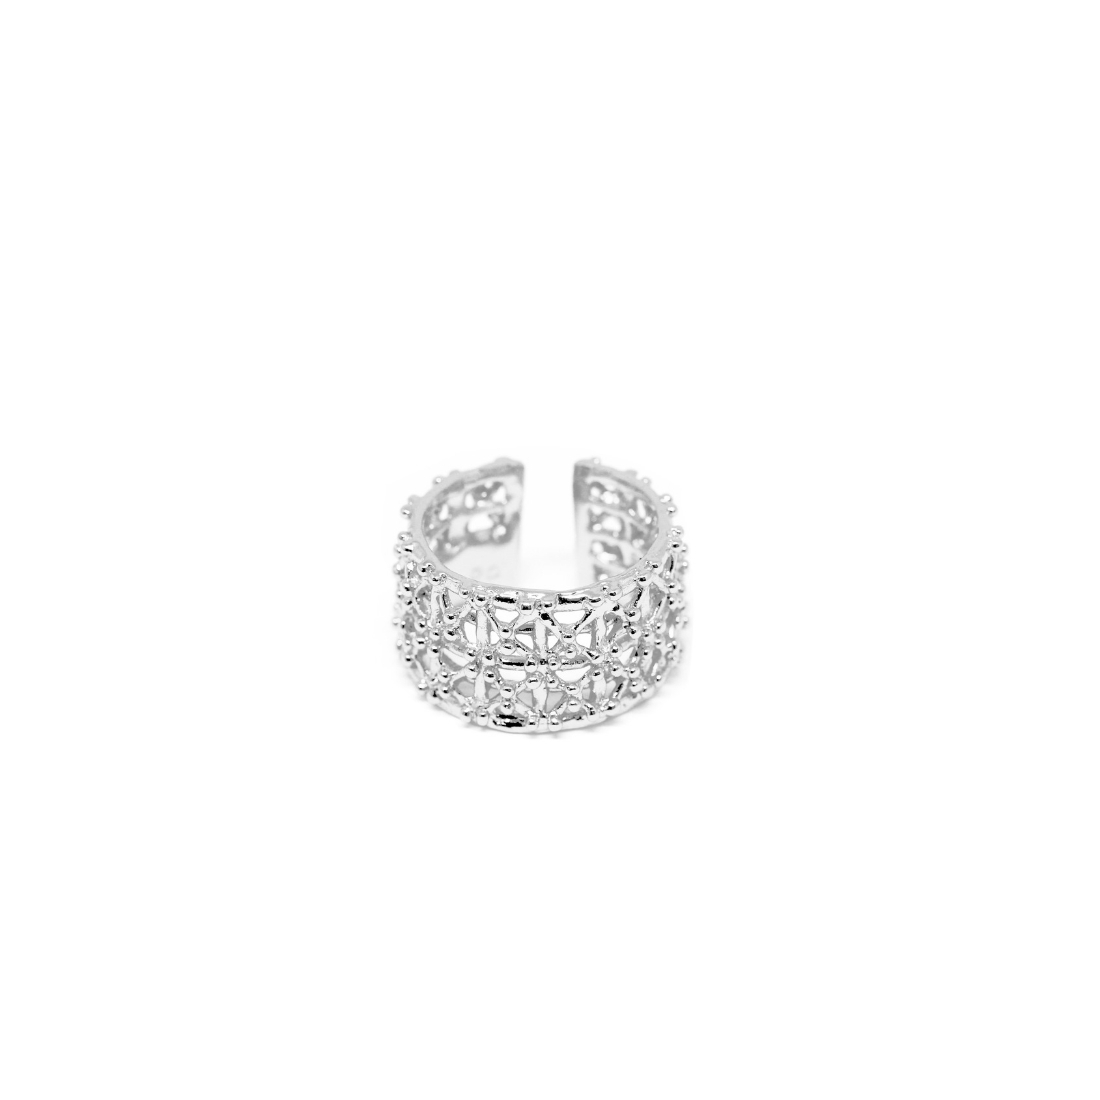 Gasometro Low Ring 925 Sterling Silver